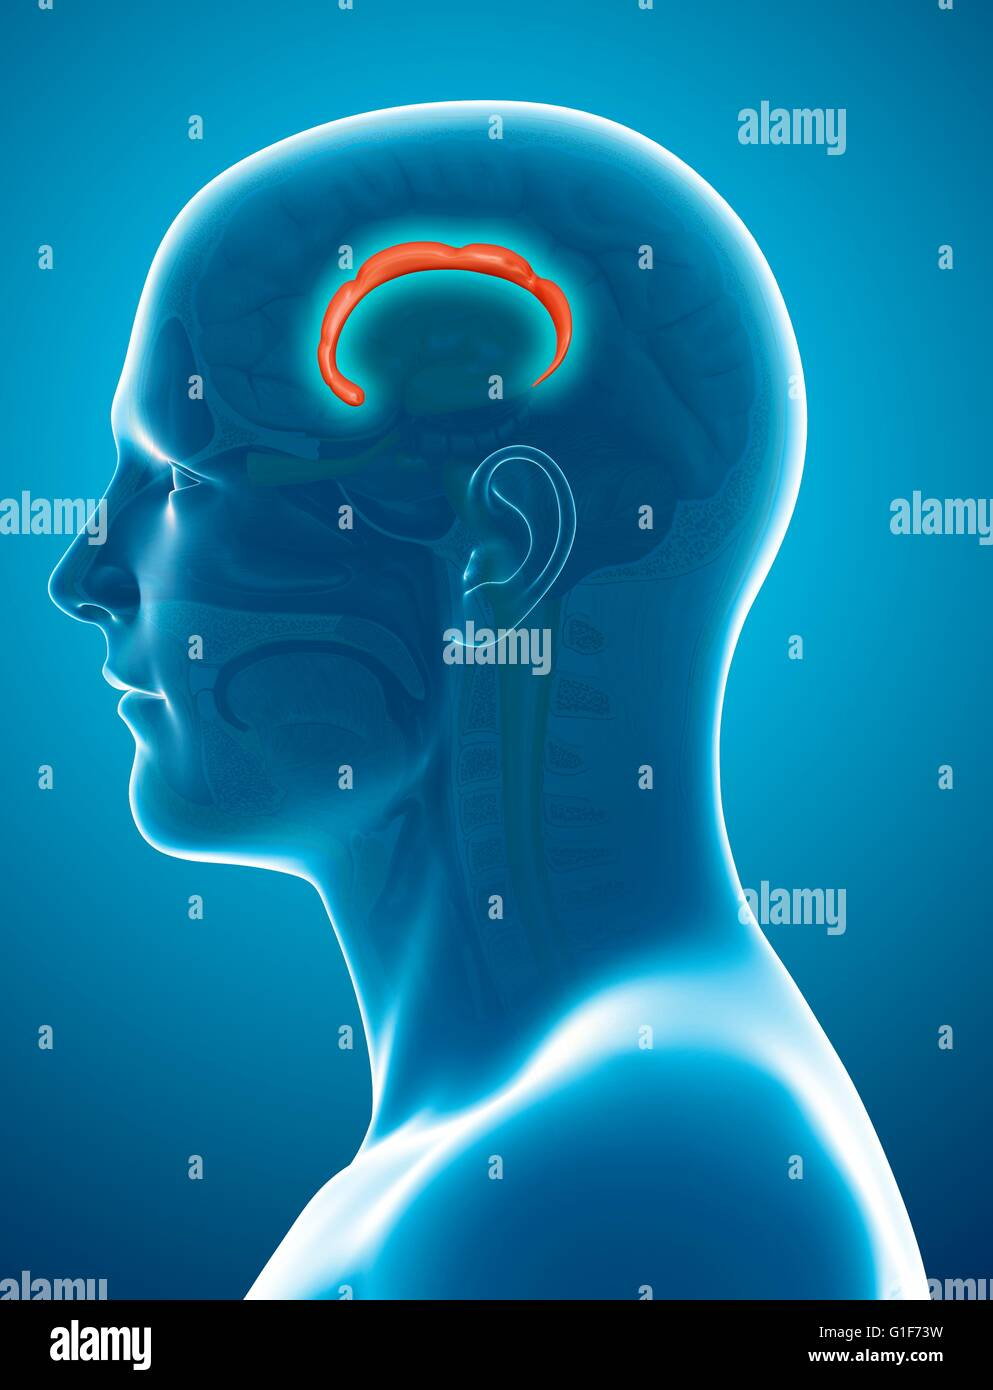 Cerveau humain (illustration), gyrus cingulaire. Photo Stock